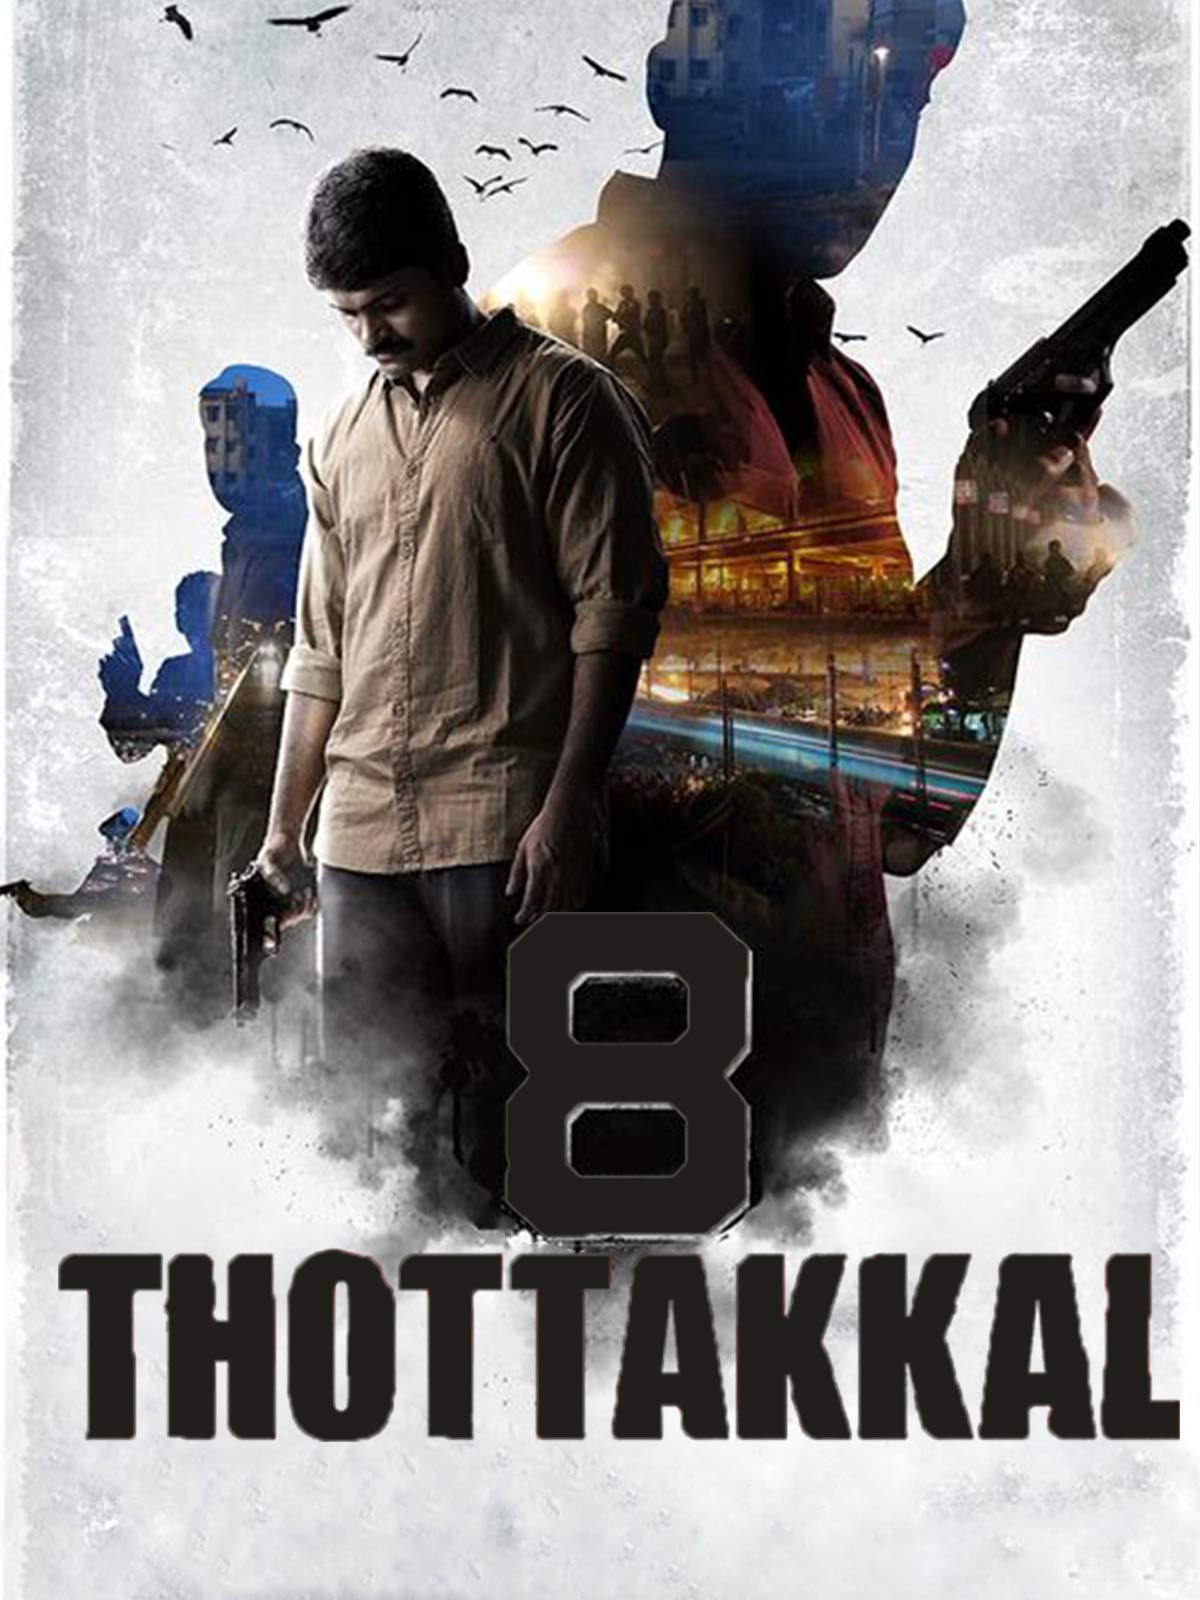 8 Thottakkal on Amazon Prime Video UK